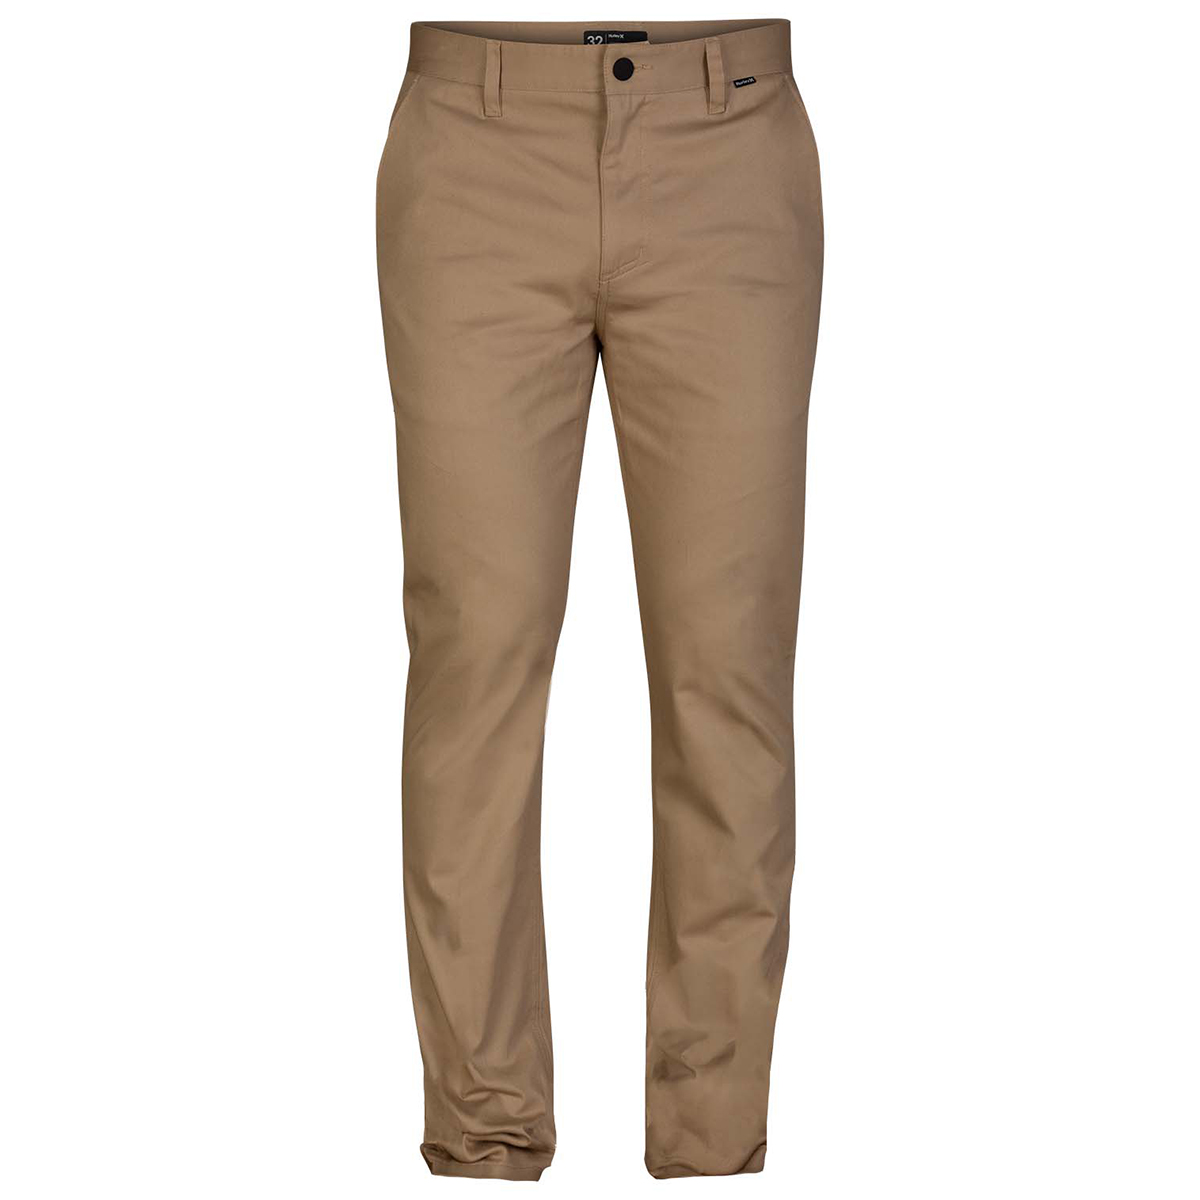 Hurley Men's Icon Stretch Chino Pants - Brown, 32